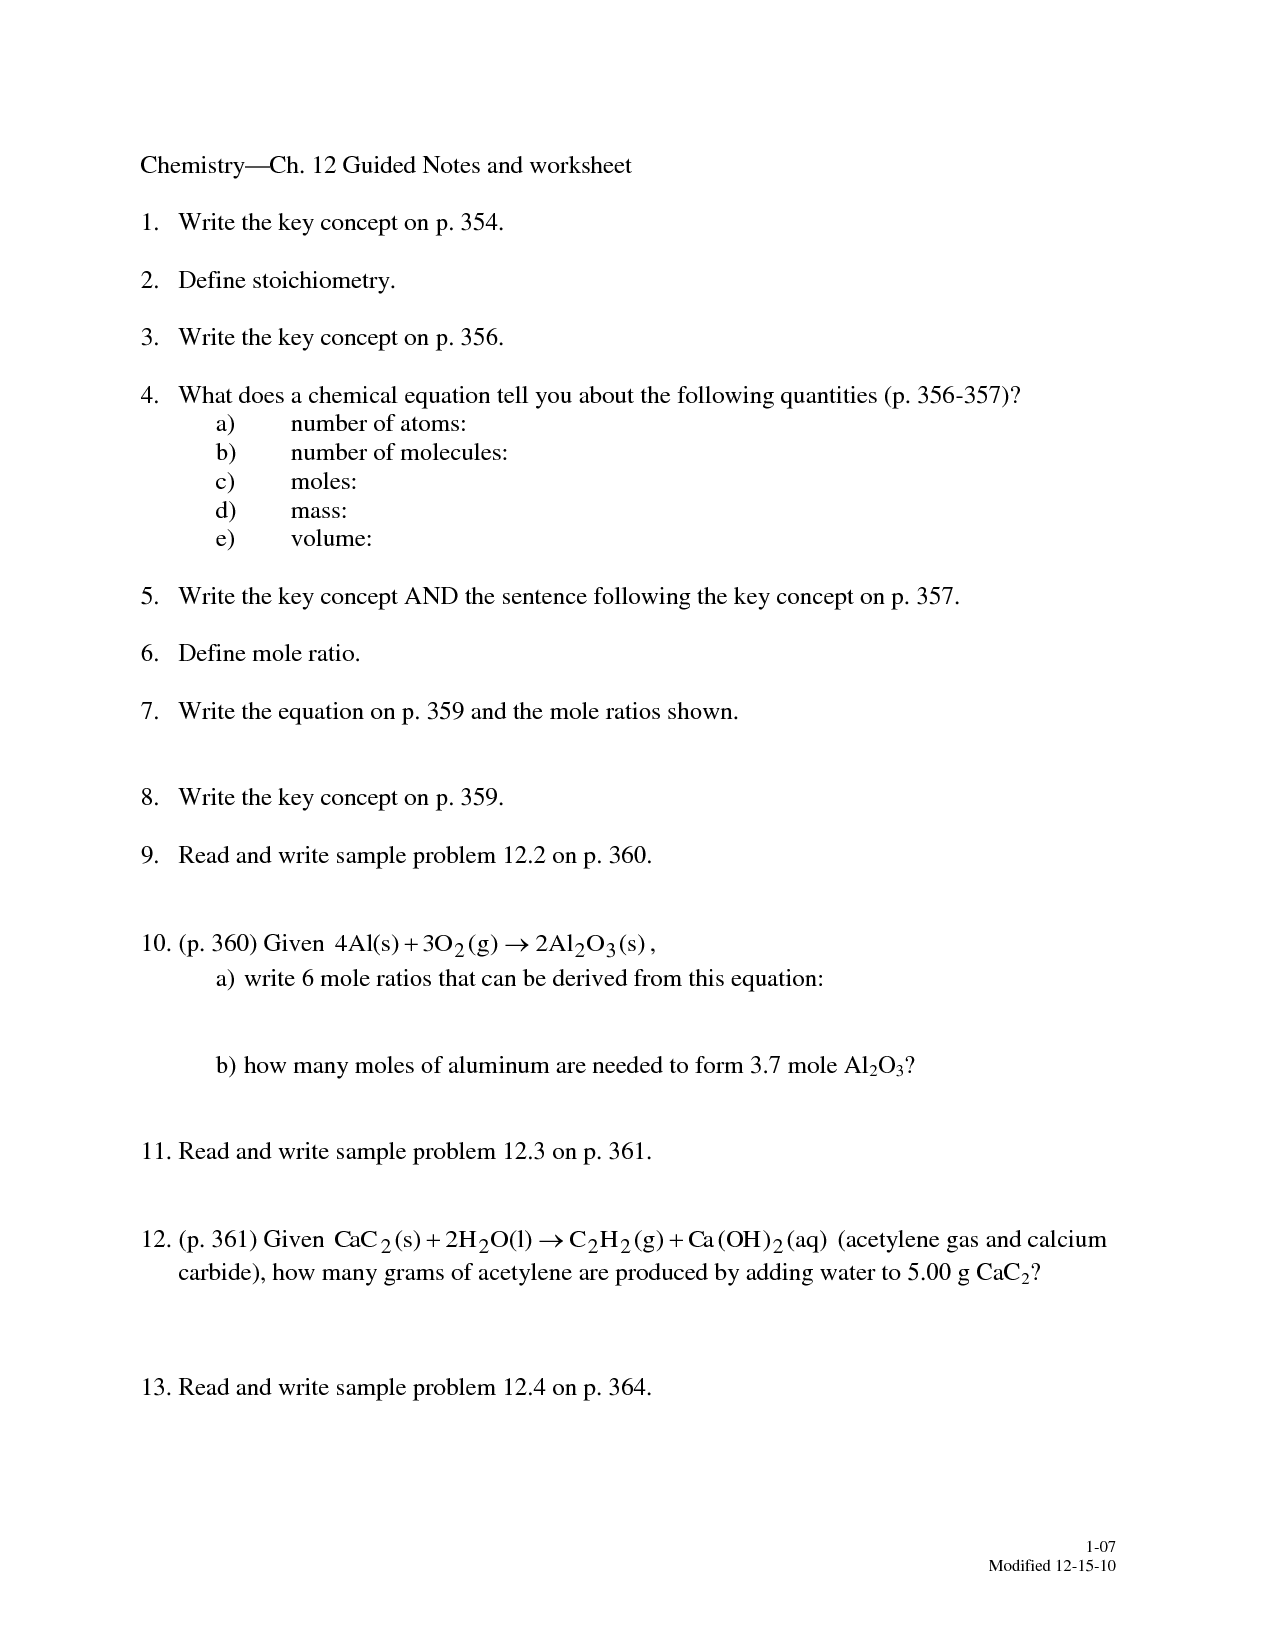 Pearson Education Math Worksheet Answers